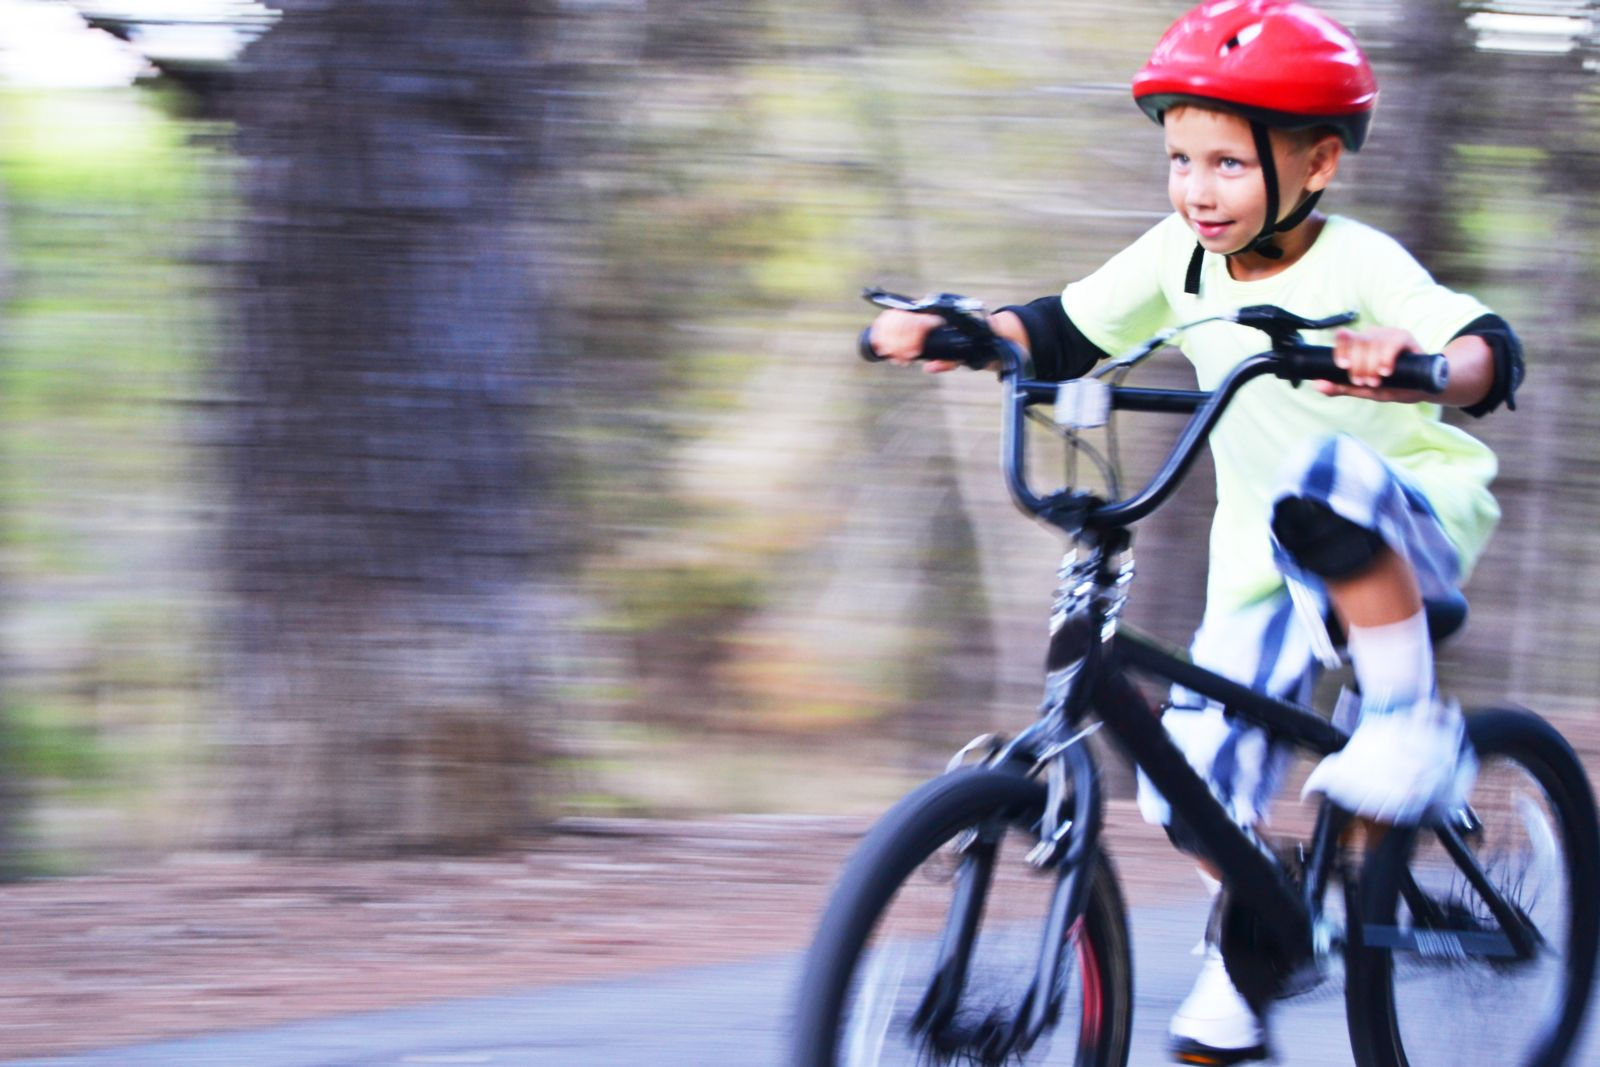 Child With Red Helmet Riding a Bicycle